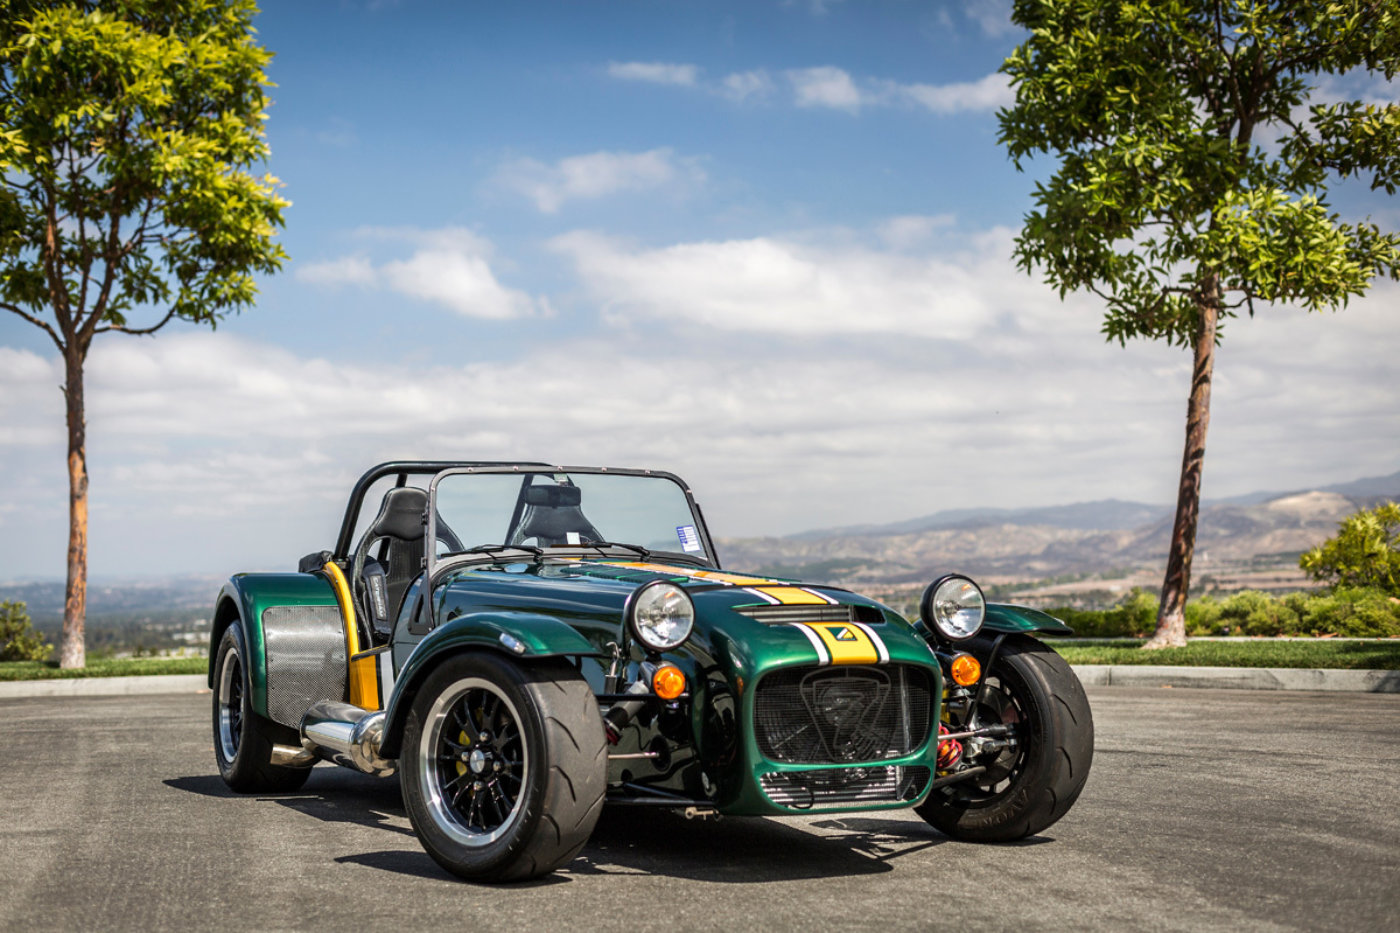 Superformance Caterham 620 R 1